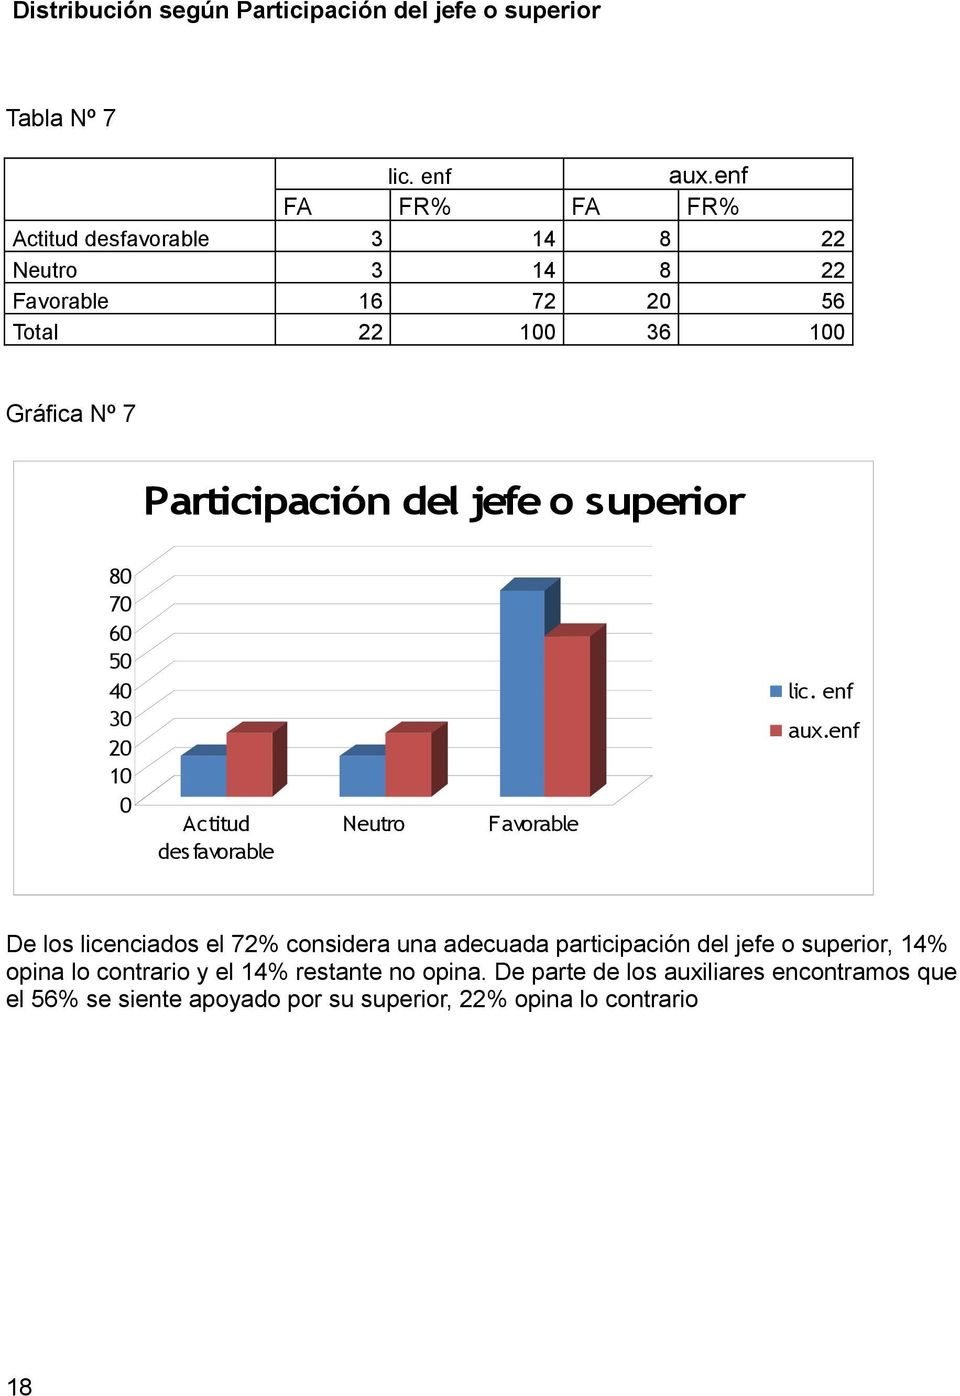 jefe o superior 80 70 60 50 40 30 20 10 0 Actitud des favorable Neutro Favorable lic. enf aux.